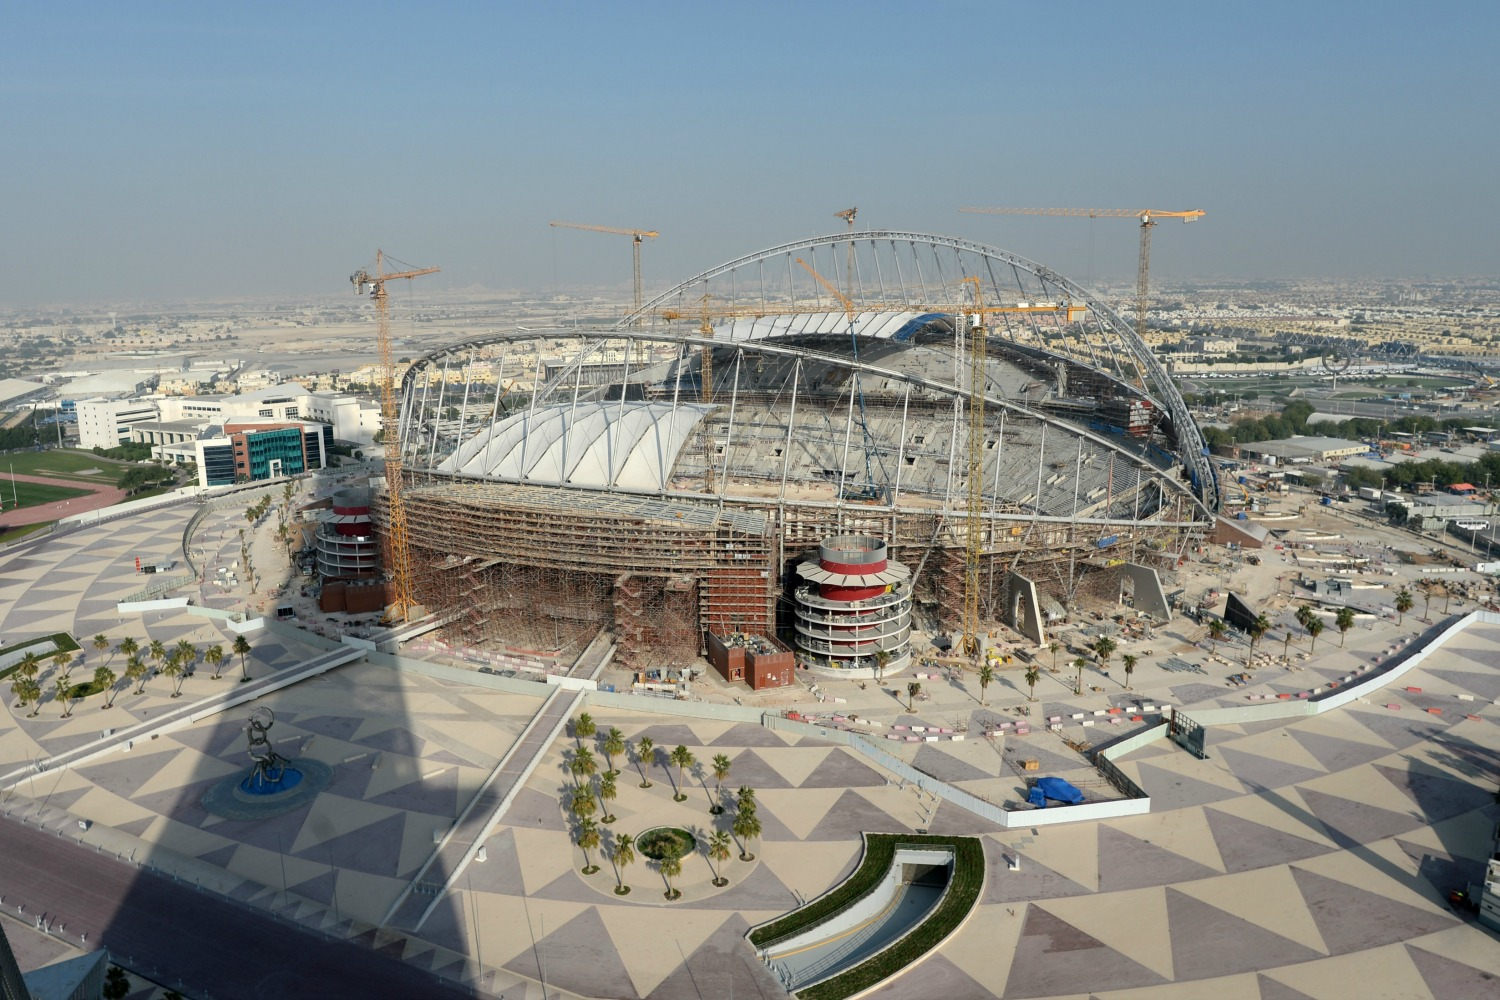 Ahead of the 2022 World Cup in Qatar, Migrant Workers